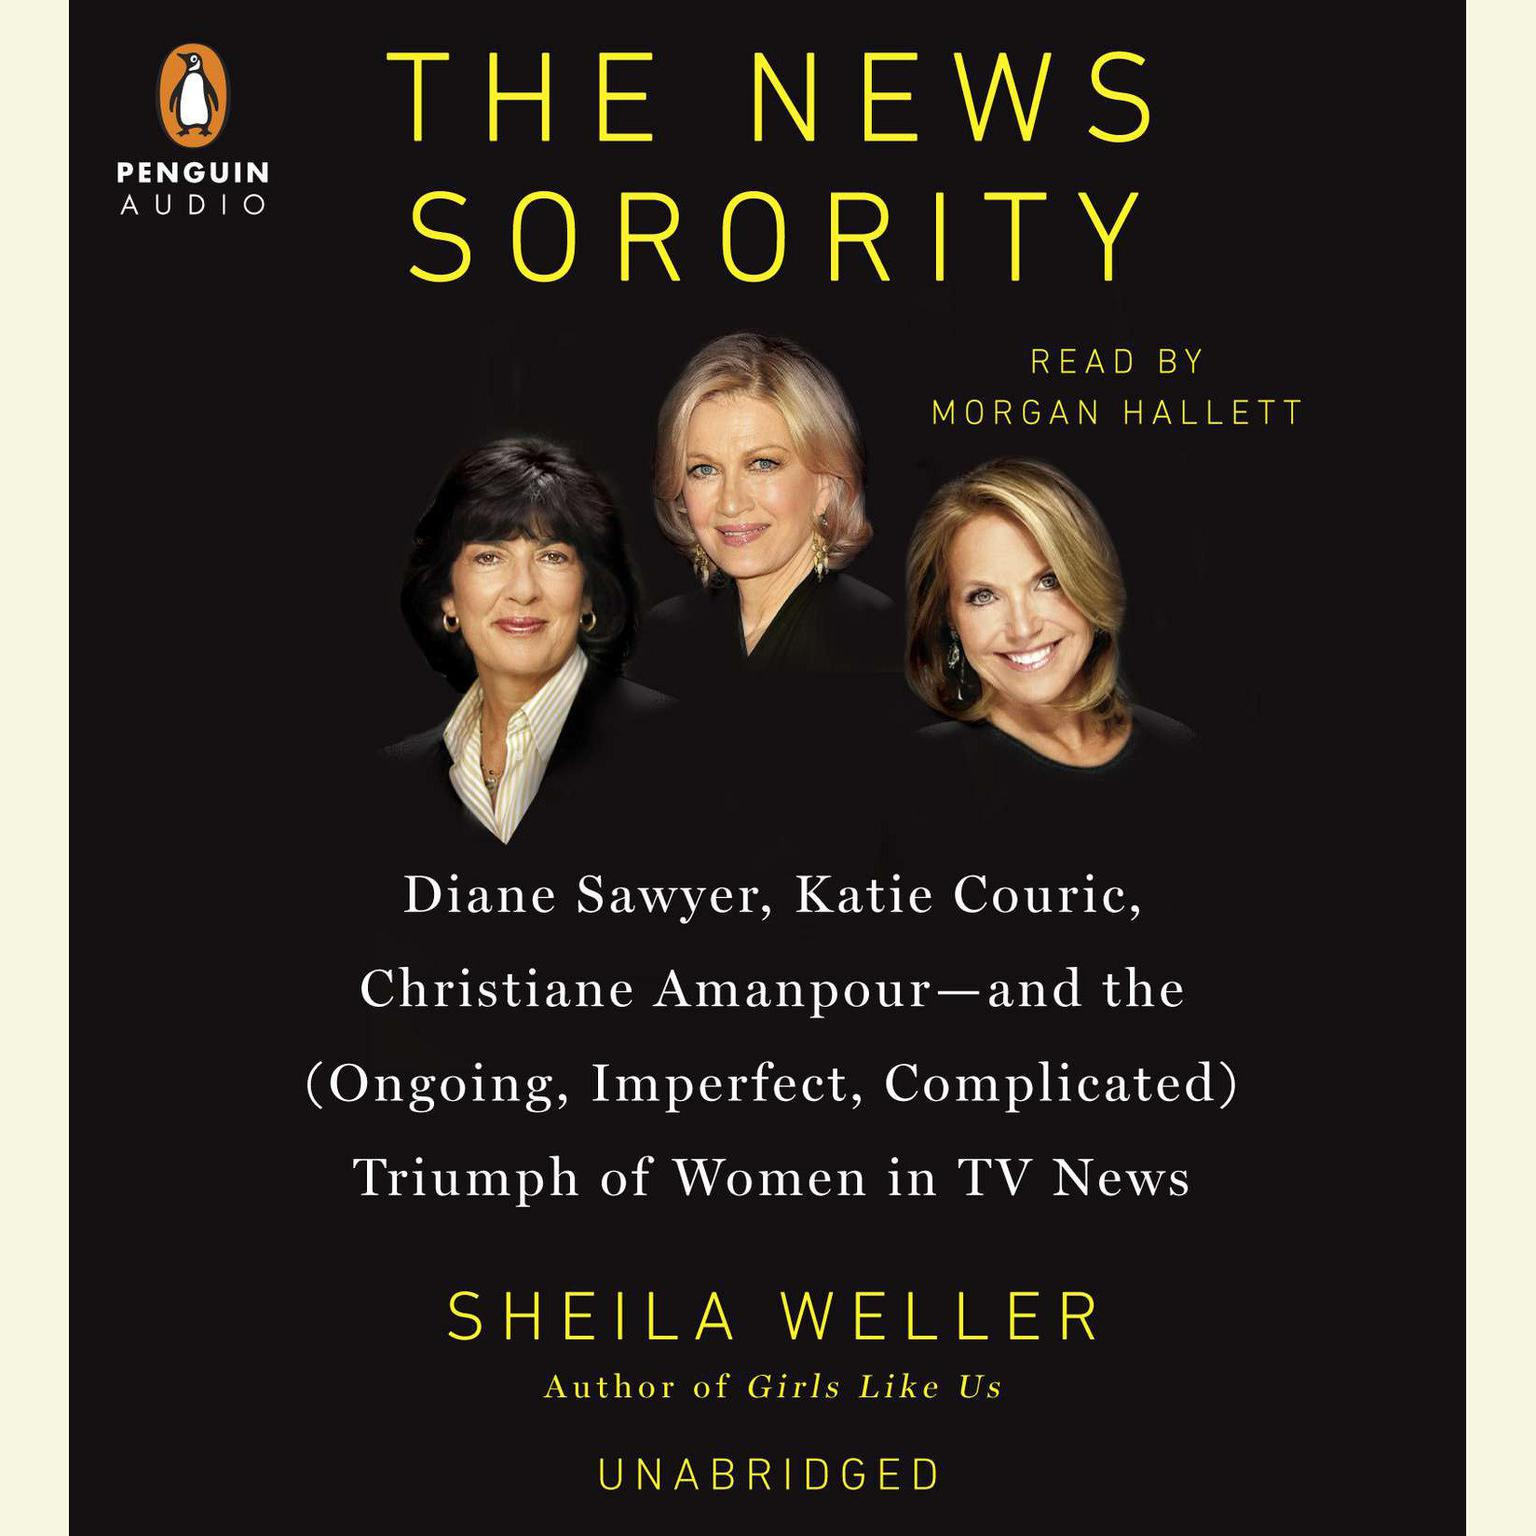 Printable The News Sorority: Diane Sawyer, Katie Couric, Christiane Amanpour-and the (Ongoing, Imperfect, Com plicated) Triumph of Women in TV News Audiobook Cover Art